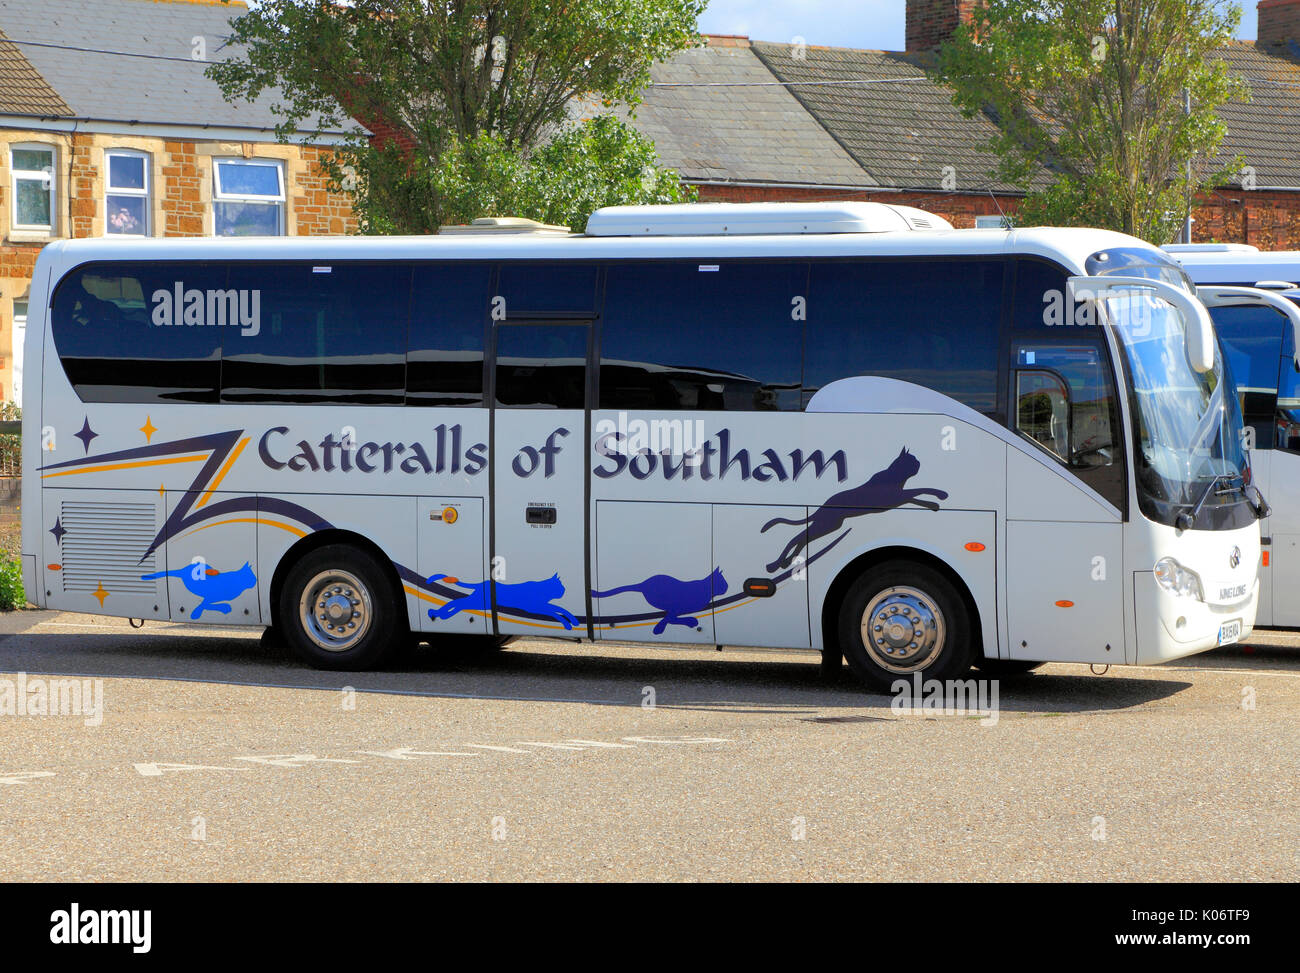 Catteralls of Southam, Coaches, coach, day trip, trips, excursion, excursions, travel company, companies, transport, holidays, England, UK - Stock Image